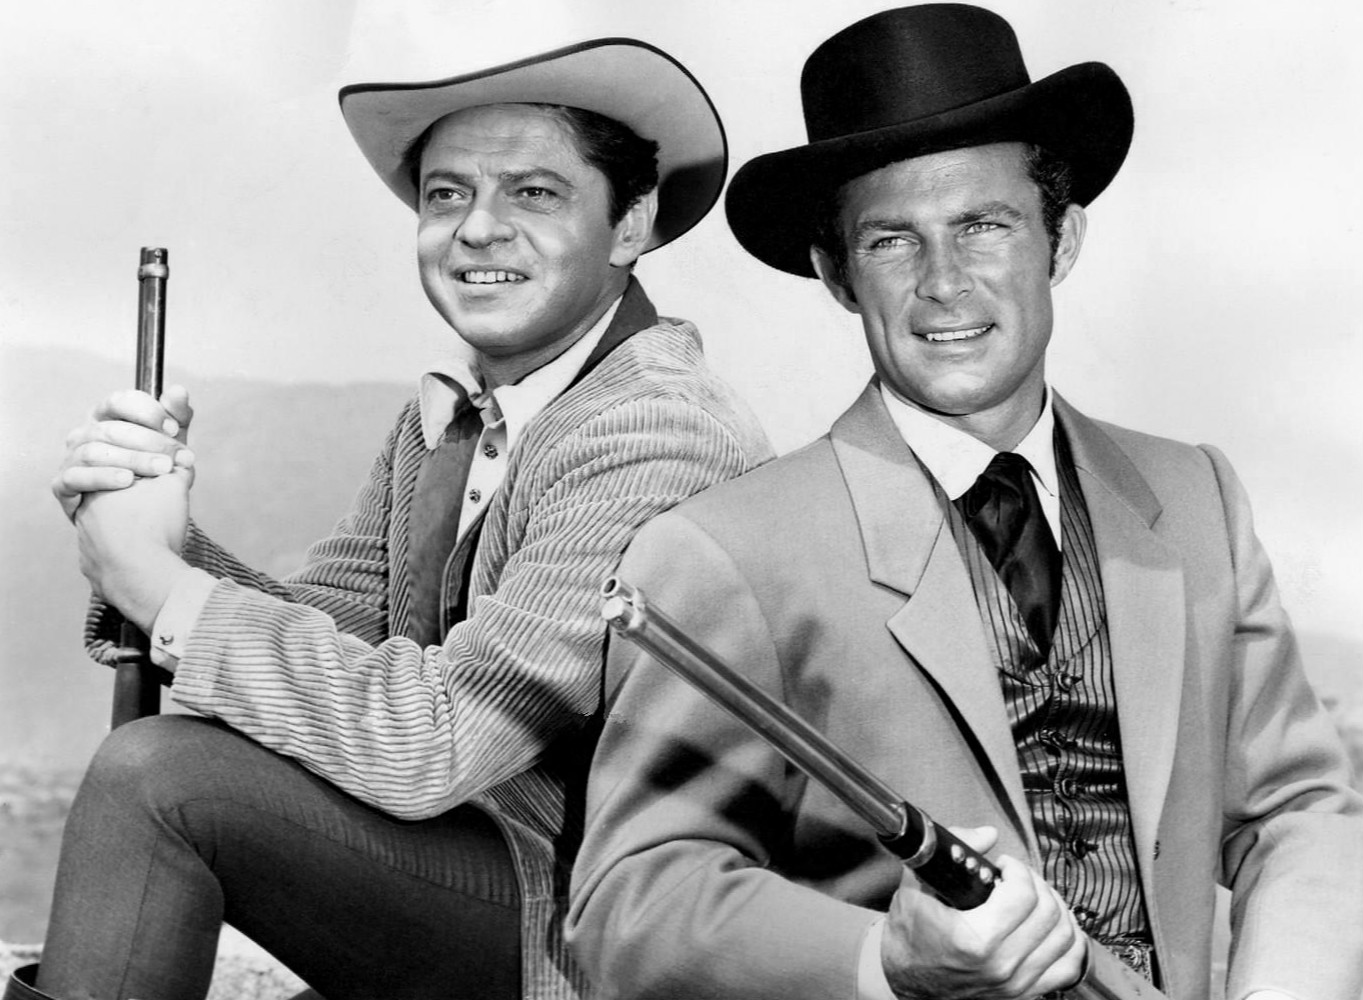 http://upload.wikimedia.org/wikipedia/commons/7/7f/Ross_Martin_Robert_Conrad_Wild_Wild_West_1965.JPG